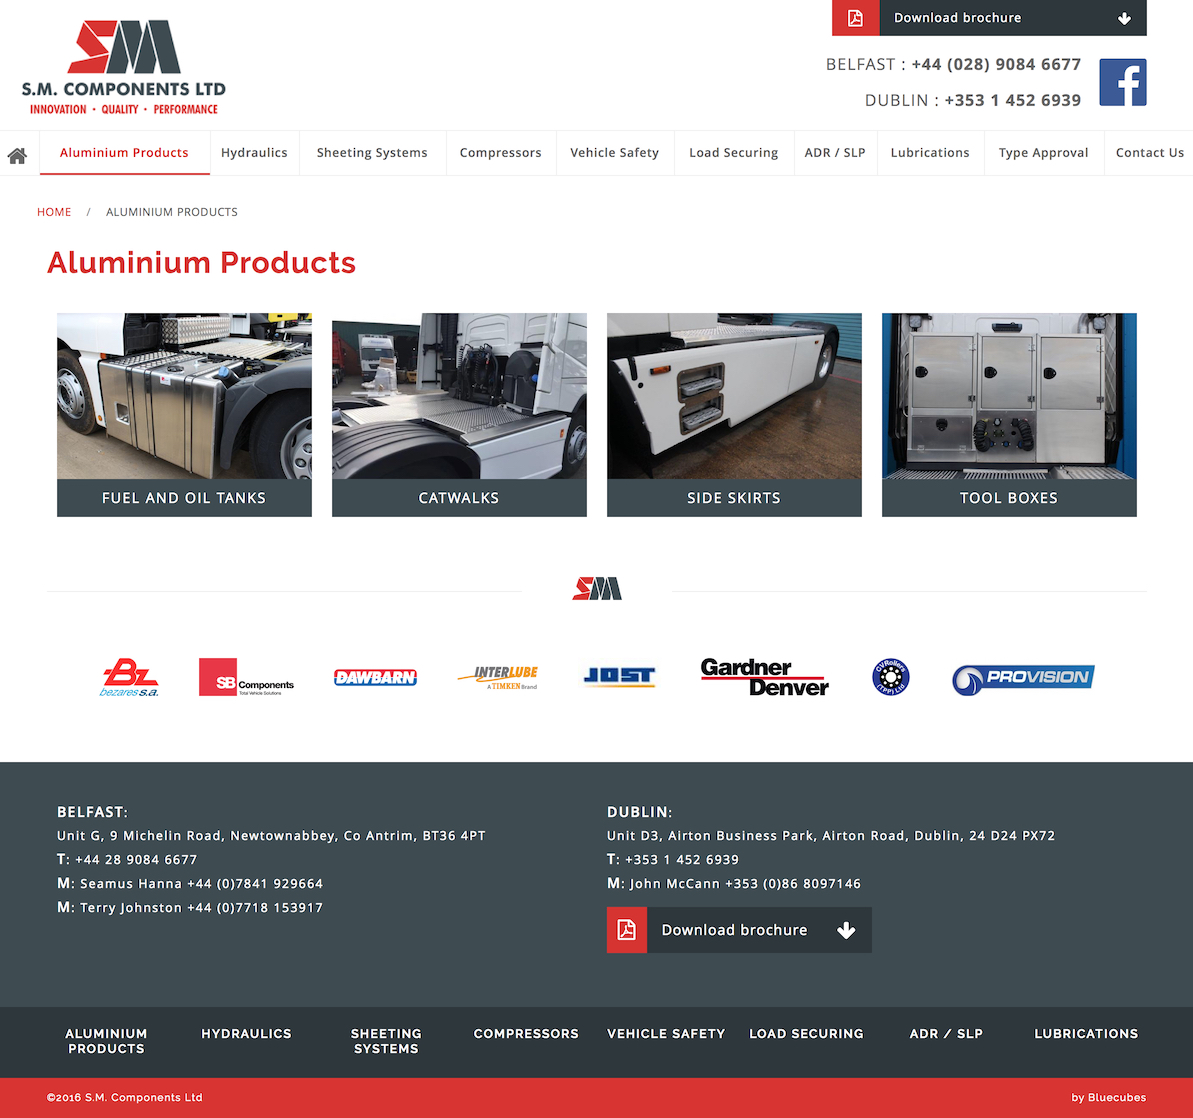 Aluminium Products for sale at SM Components